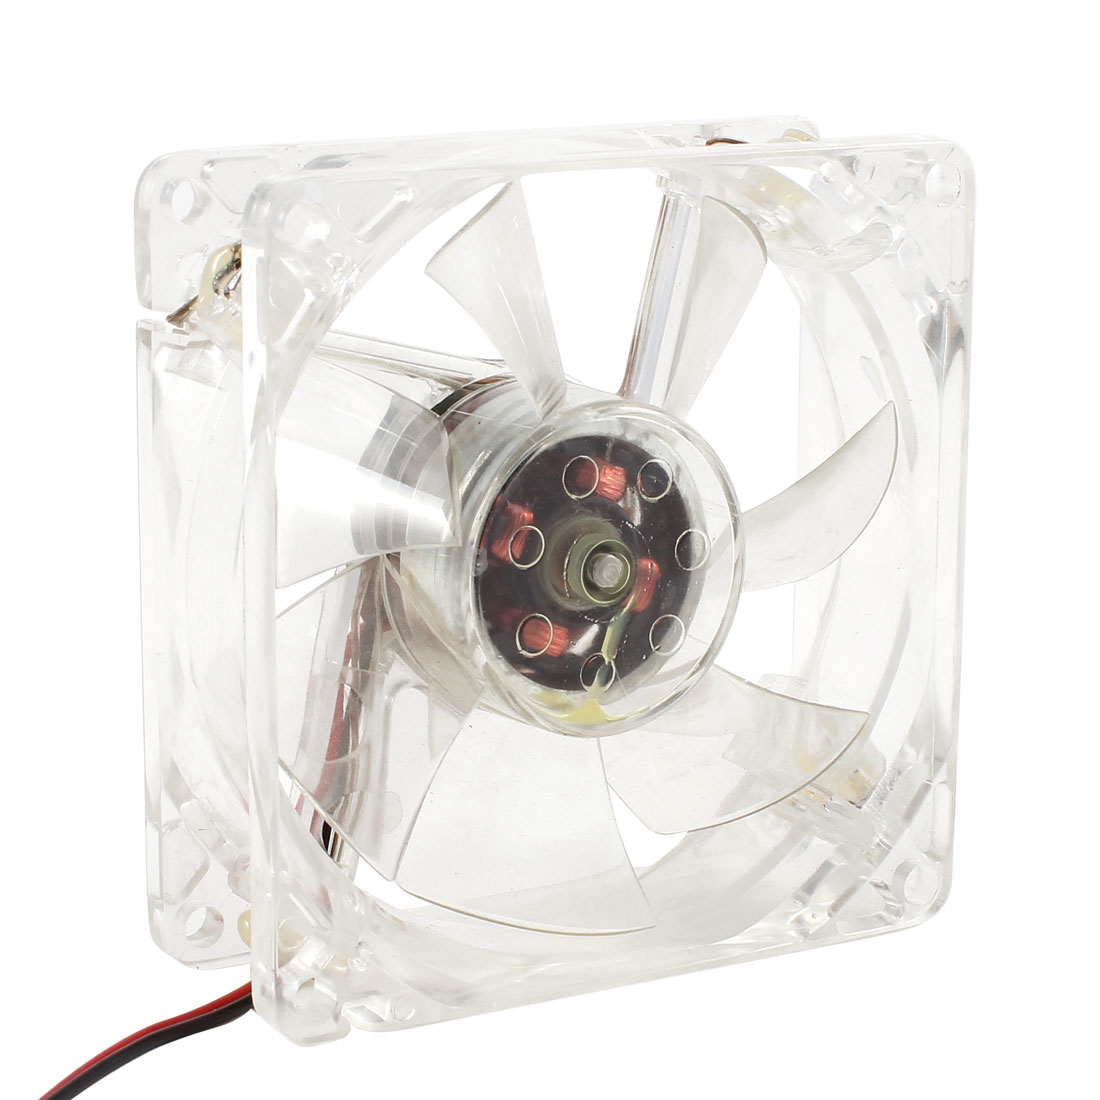 80mm x 25mm DC 12V 0.17A 4Pin Cooling Fan for CPU Cooler Computer Case